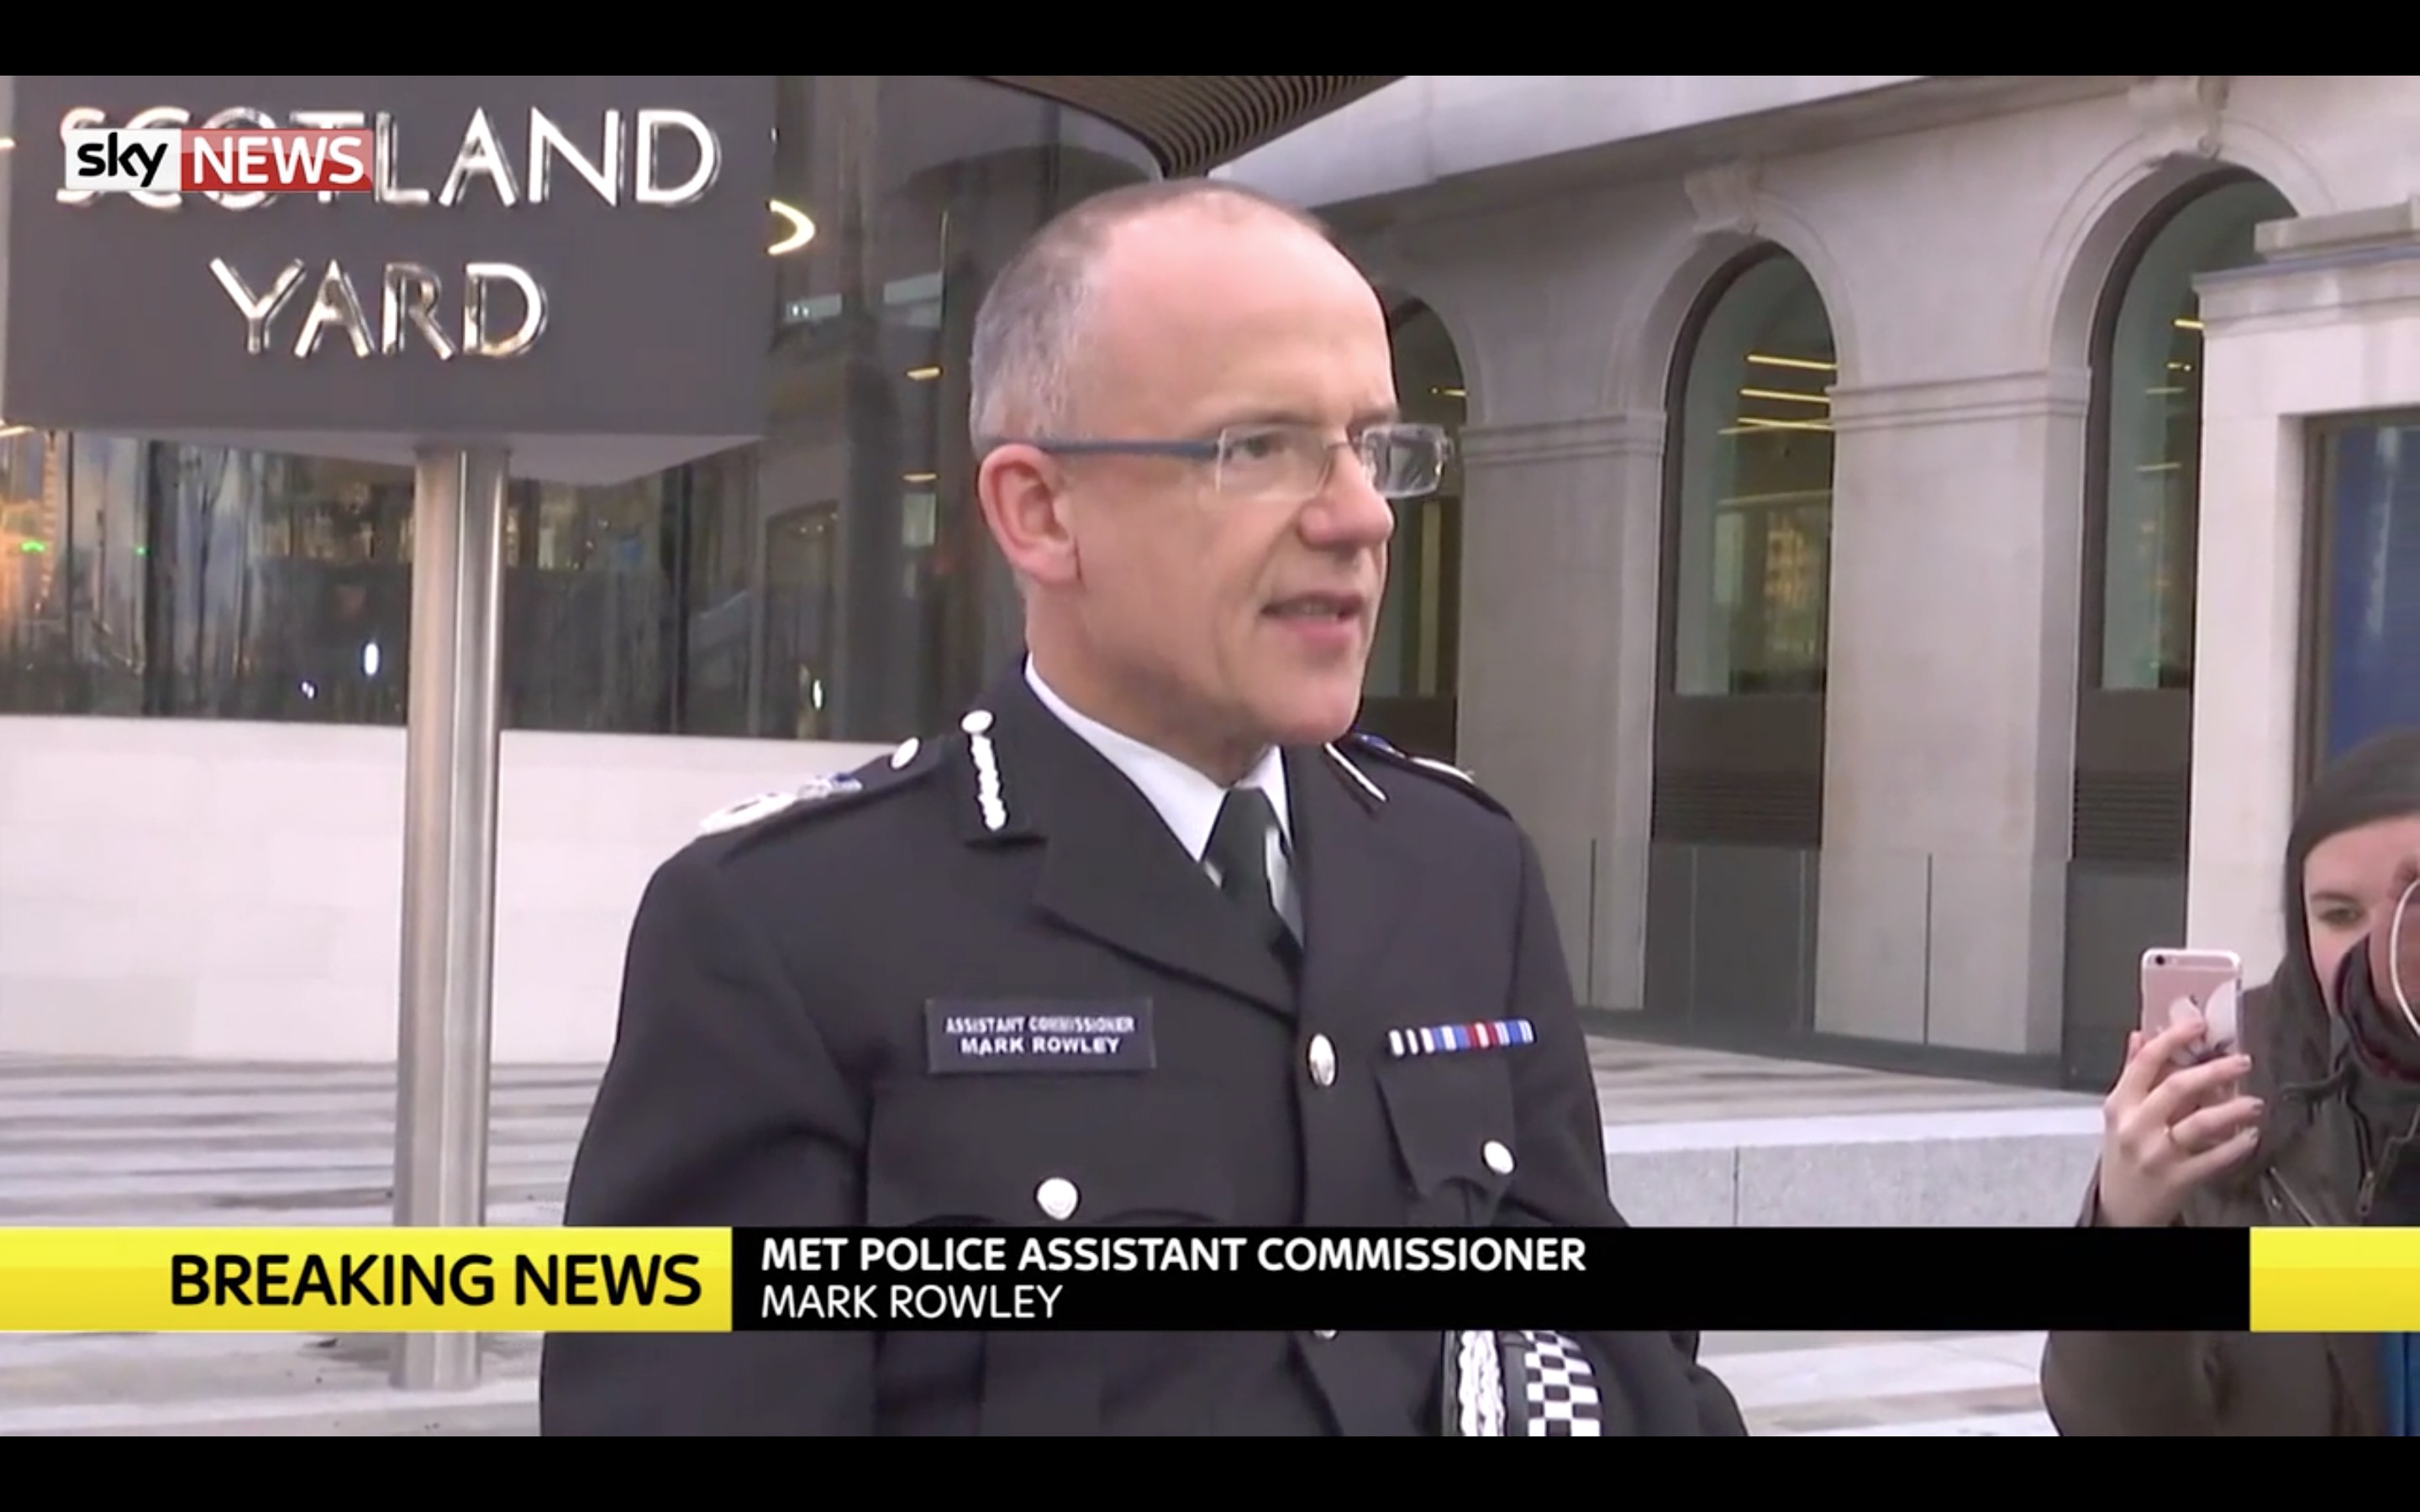 Metropolitan Police Assistant Commissioner Mark Rowley at press conference confirming the loss of one police officer.